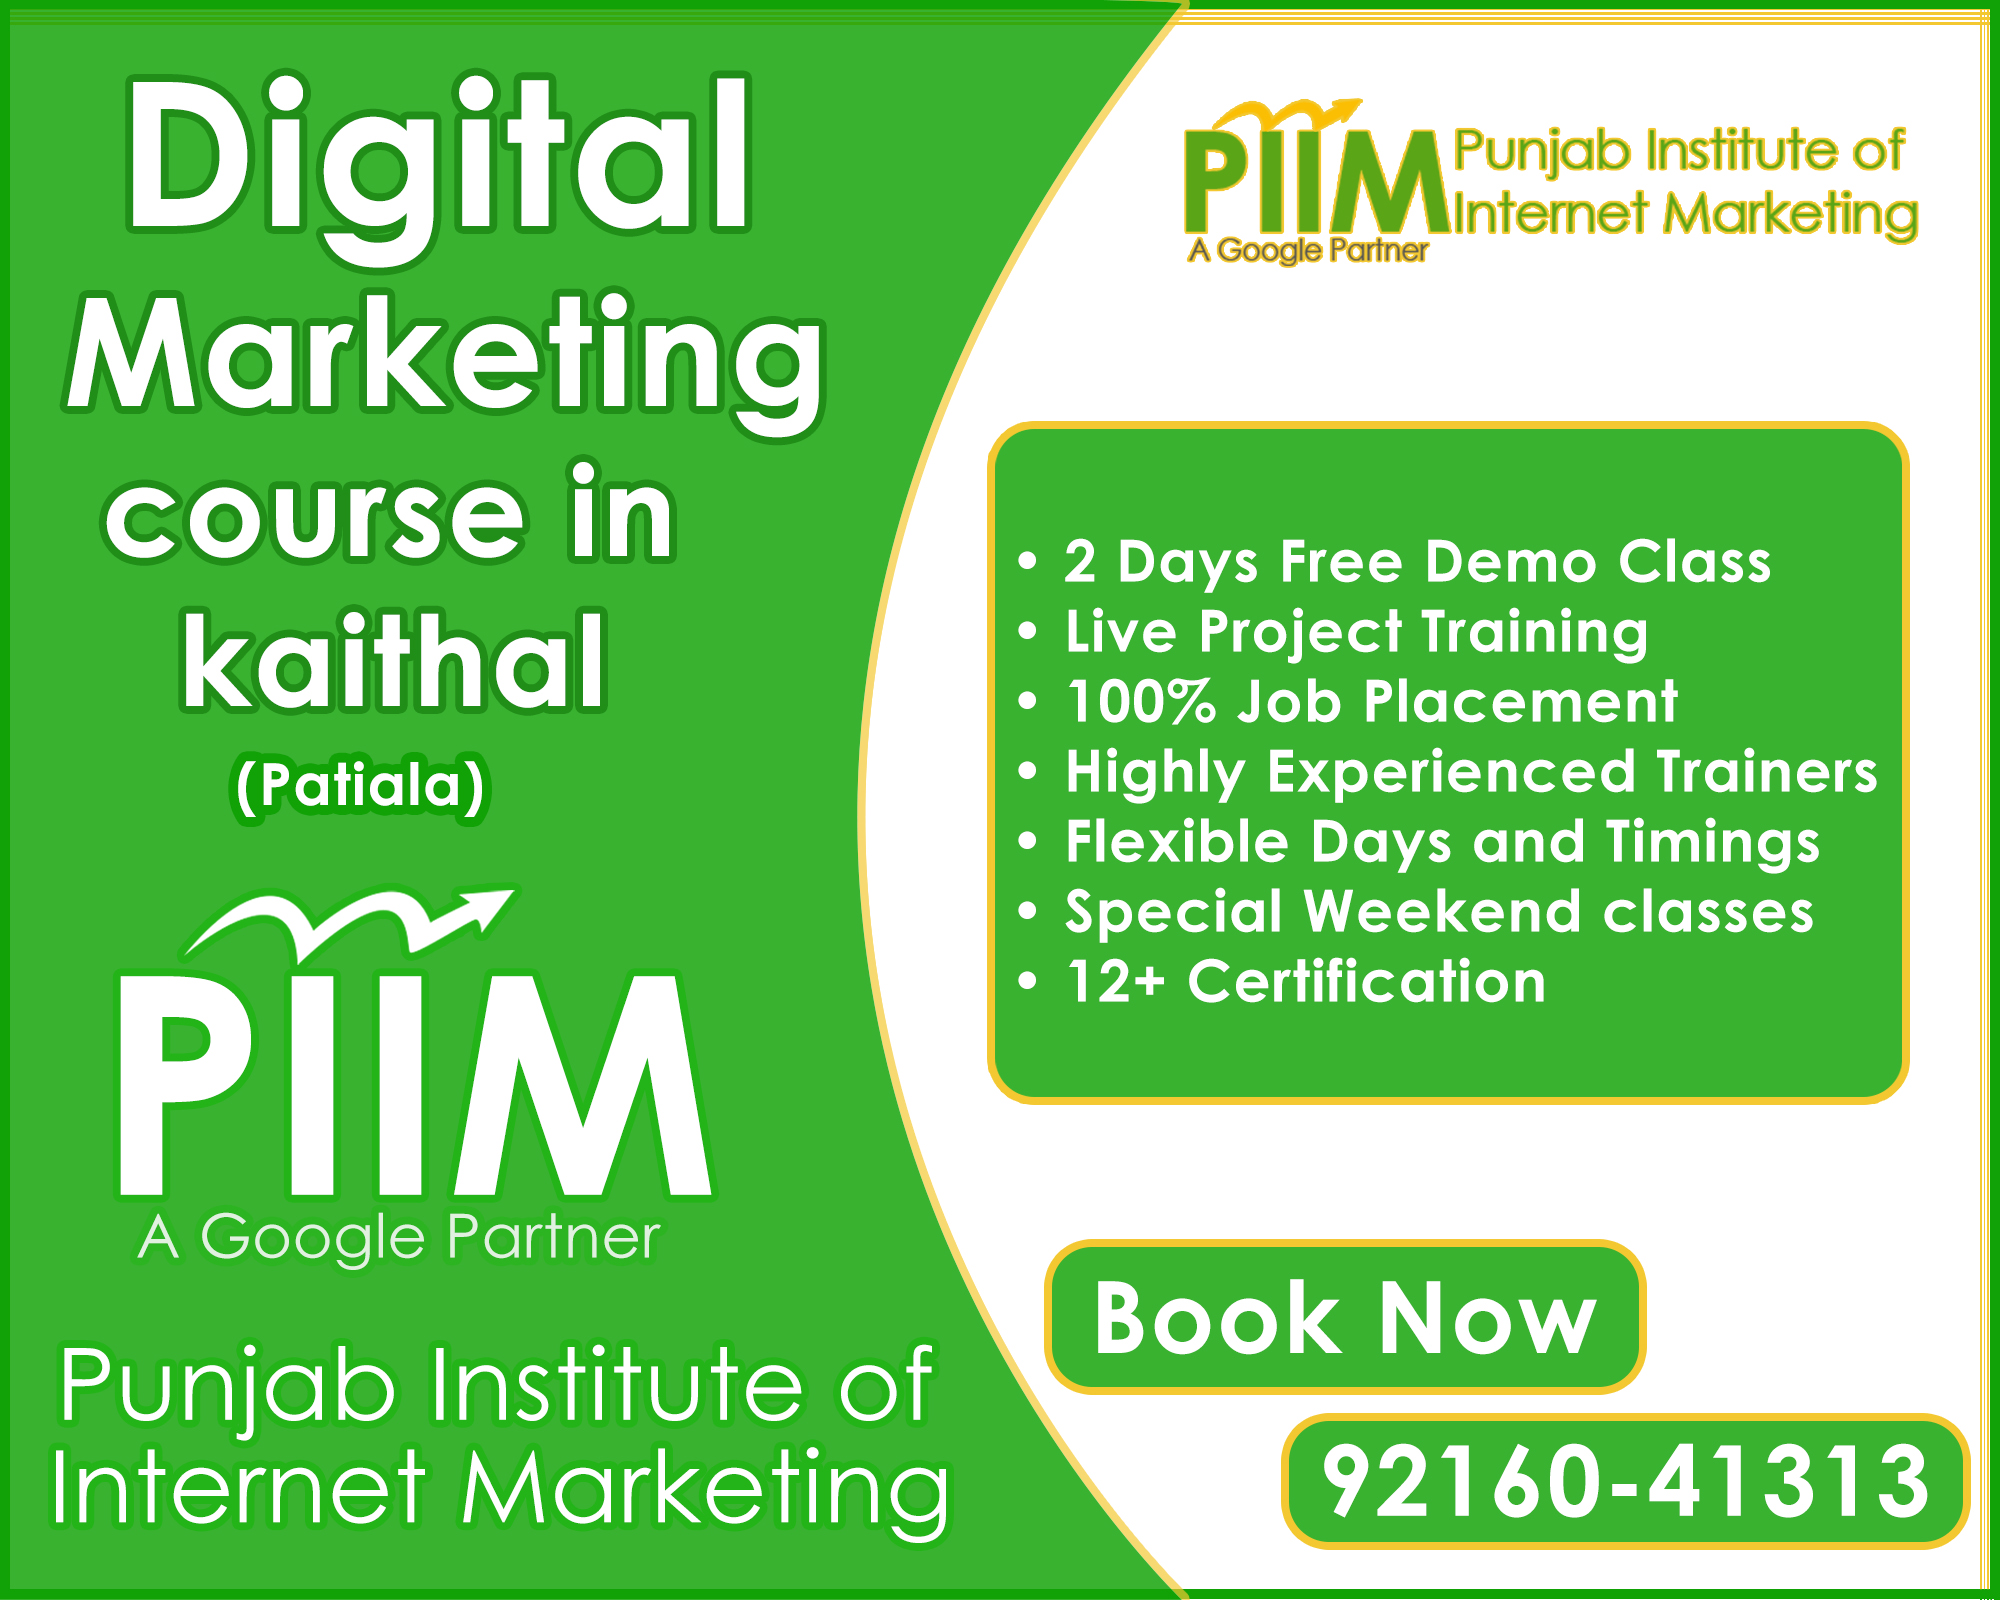 Digital Marketing Course in Kaithal